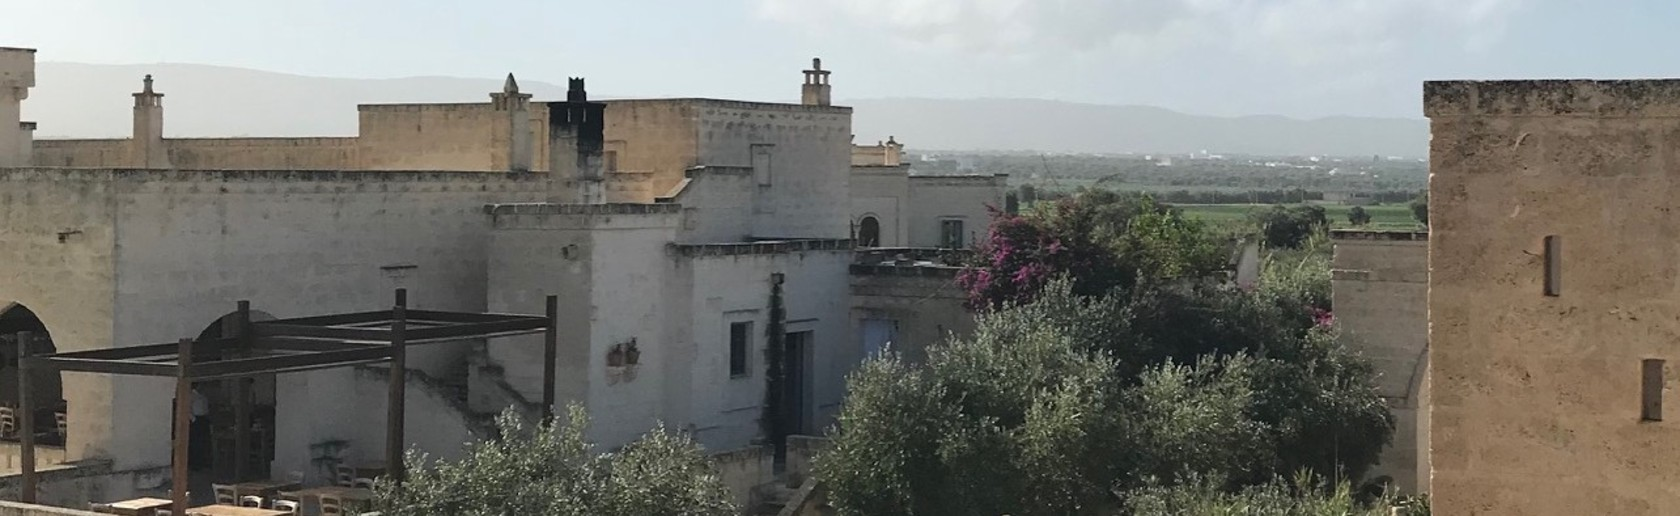 Engaging Community Practical Solutions banner image - Rooftop view of old buildings surrounded by flowering bushes and mountains in the background